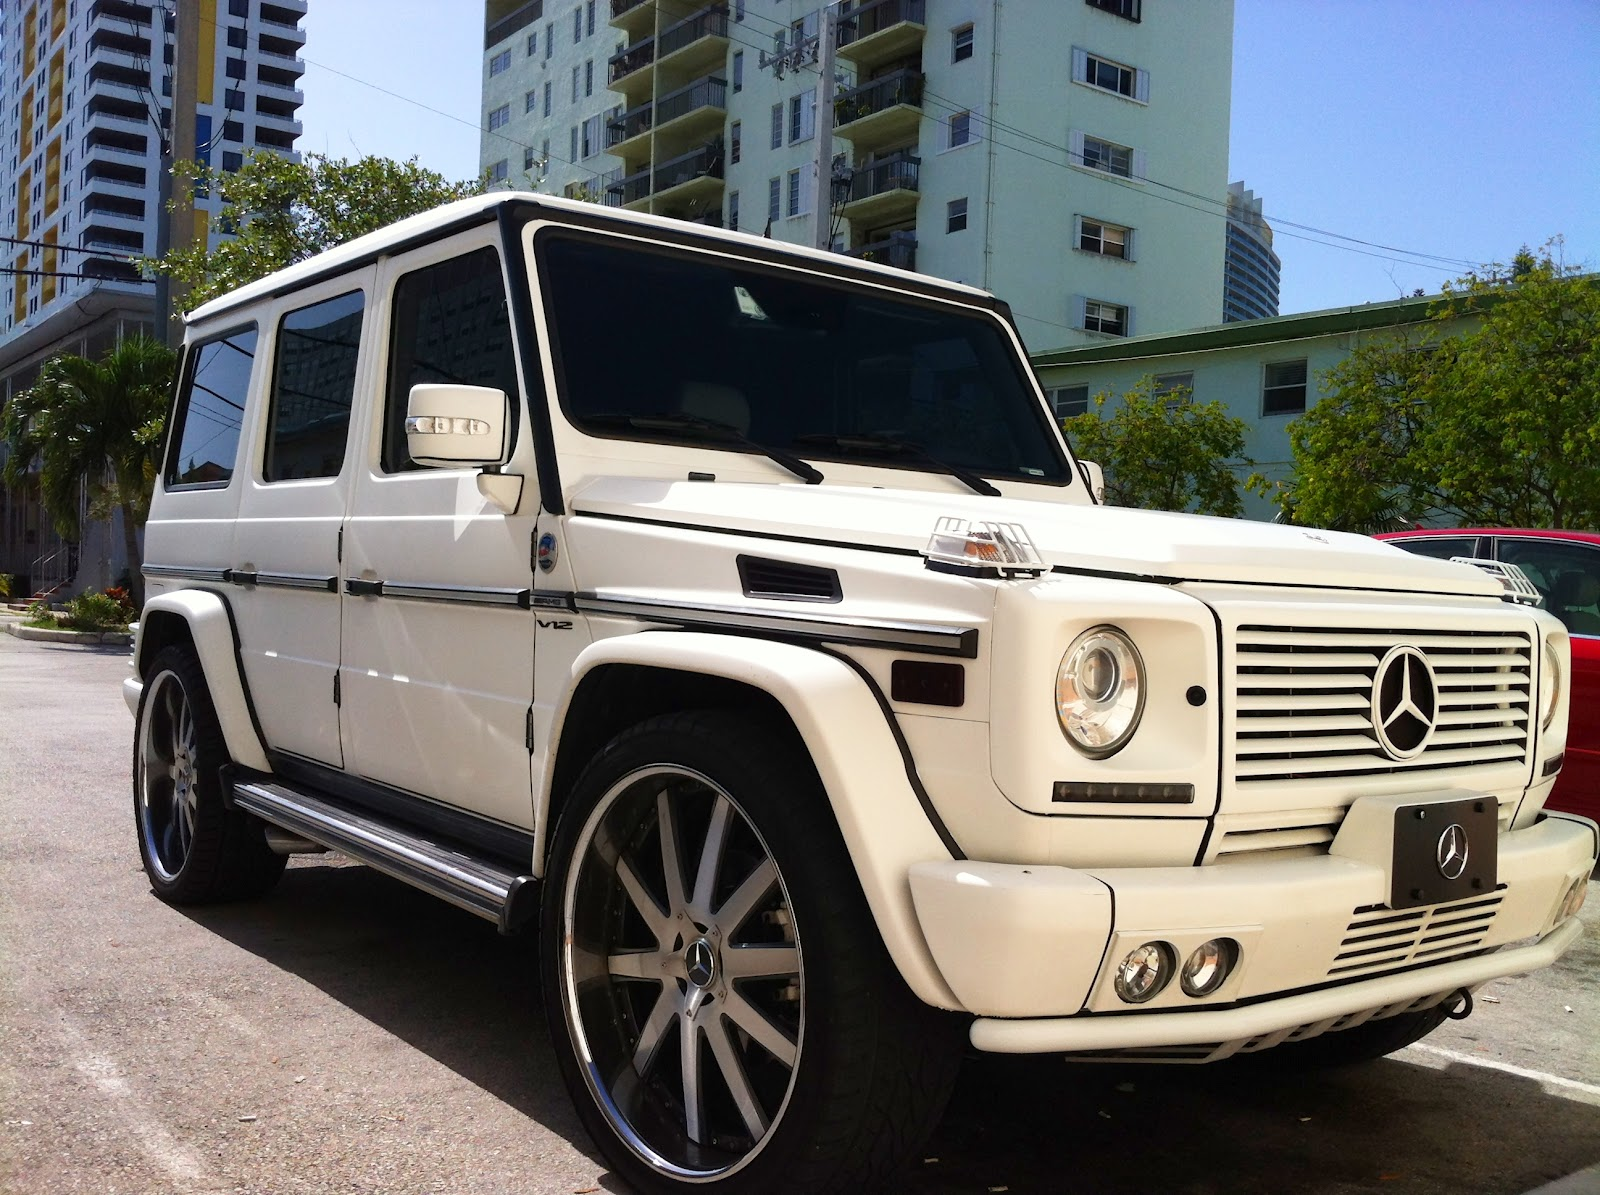 White Mercedes G Wagon With Custom Rims Exotic Cars On The Streets